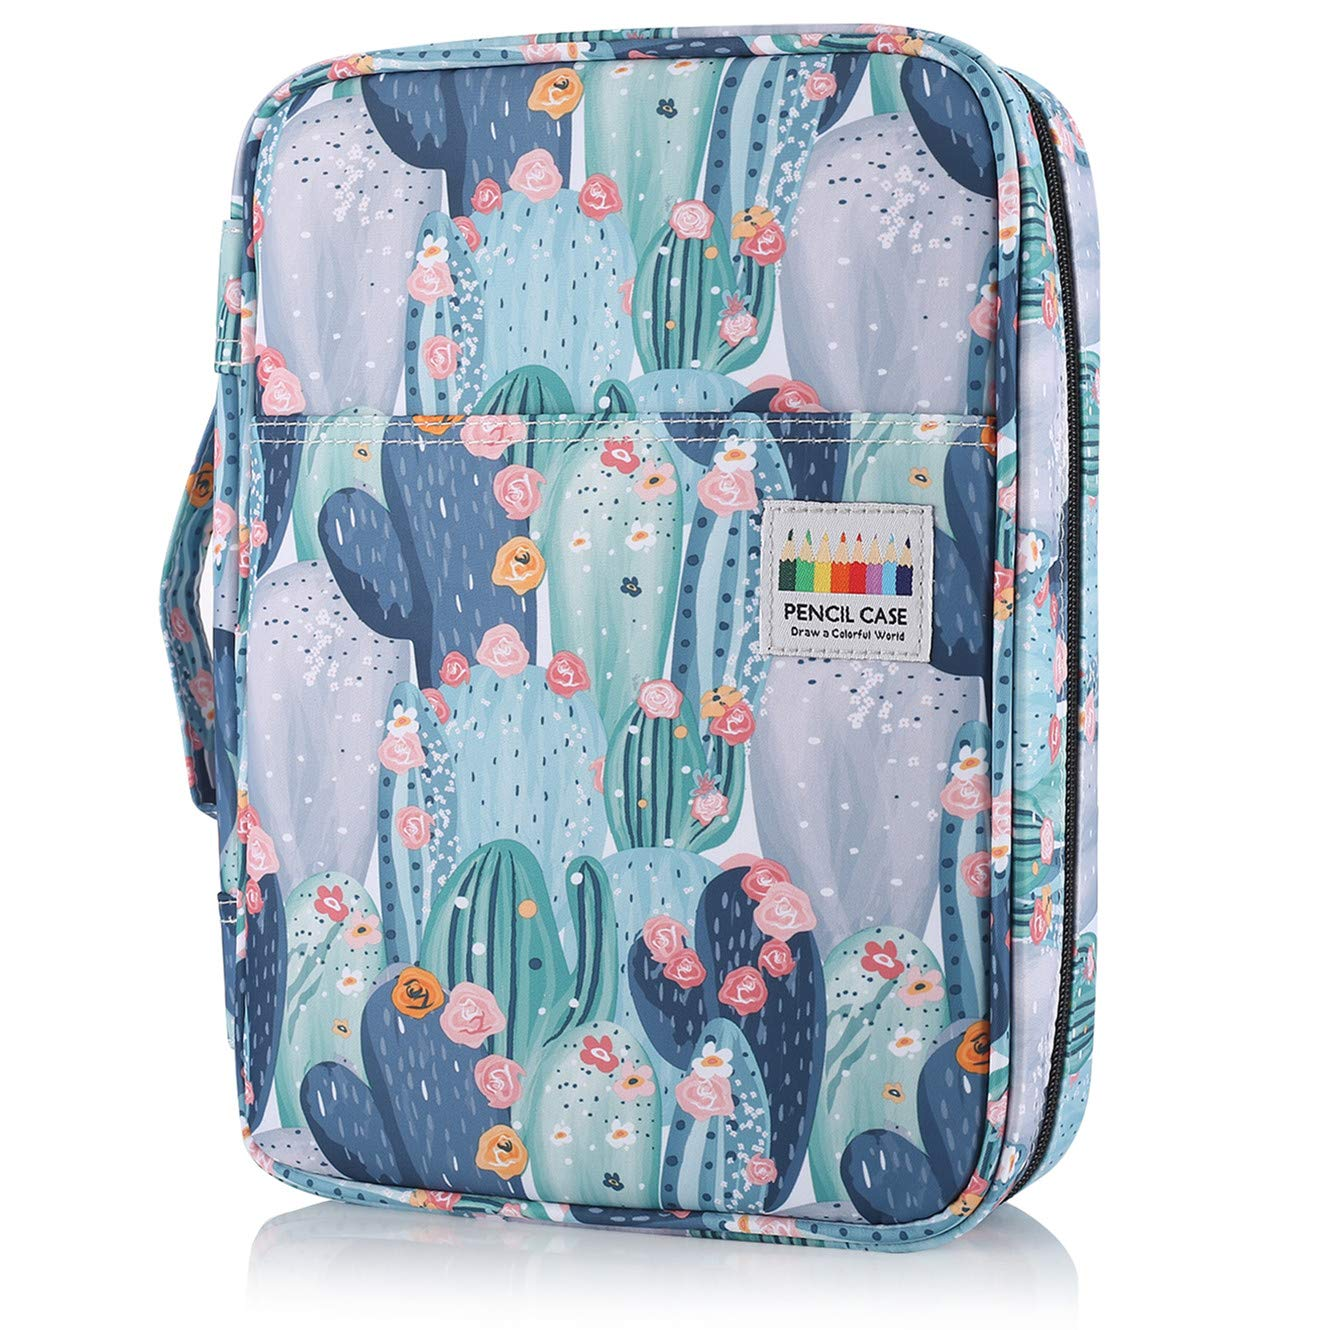 Shulaner Colored Pencil Case Slot Holds 220 Pencils or 144 Gel Pens with Zipper Closure Large Capacity Nylon Pen Organizer for Student or Artist